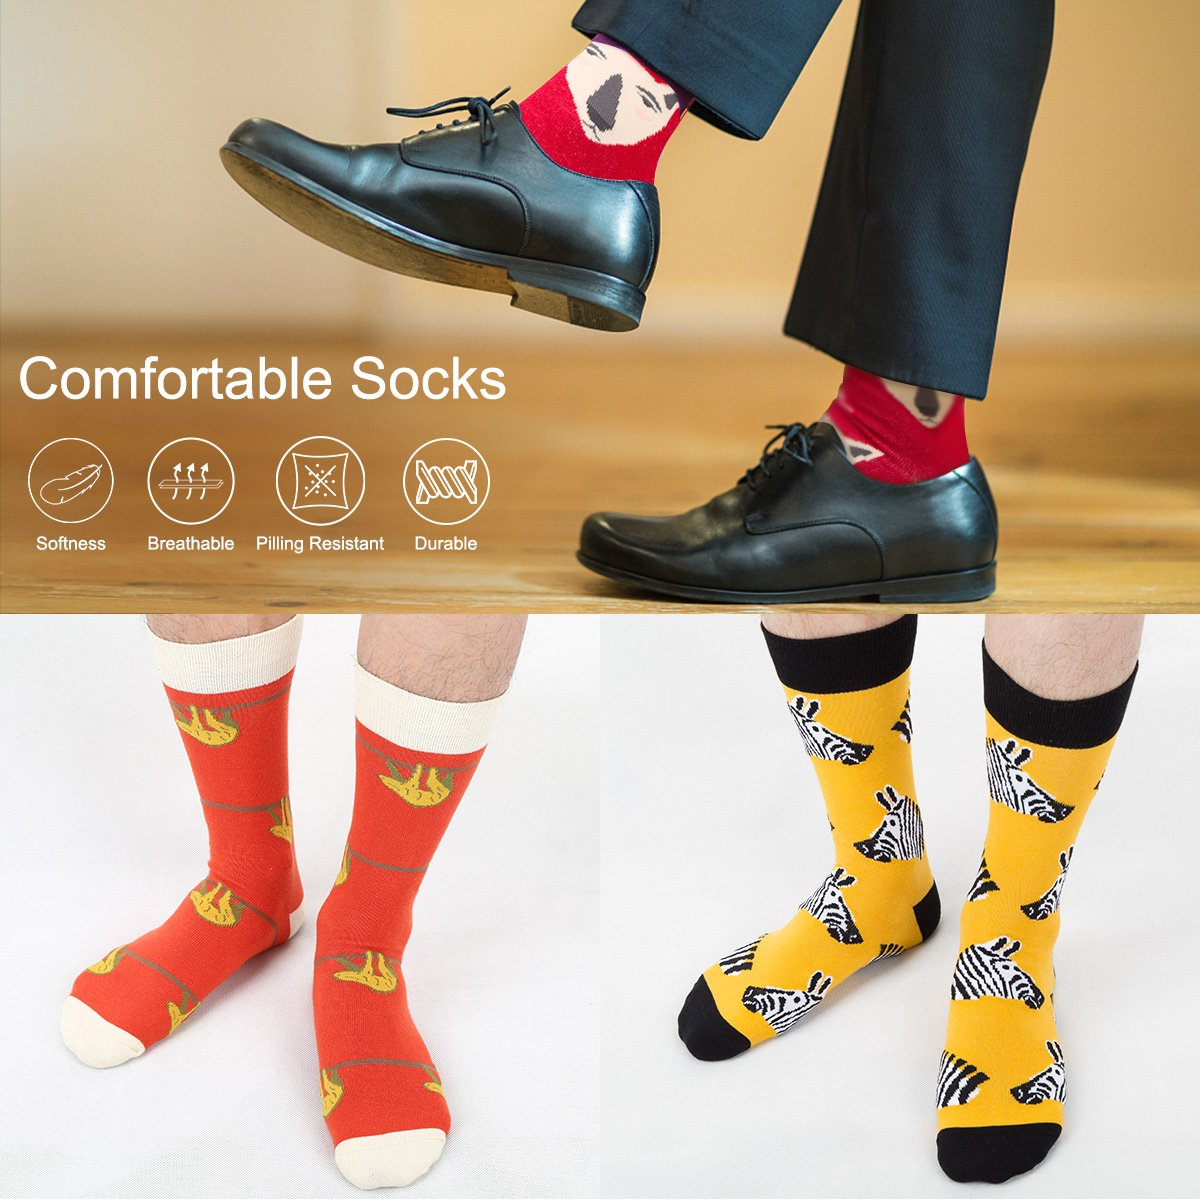 ,EU 42-45,by Tutast Mens Fun Dress Socks Colorful Fancy Novelty Funny Casual Combed Cotton Crew Socks Animal 3 Pack